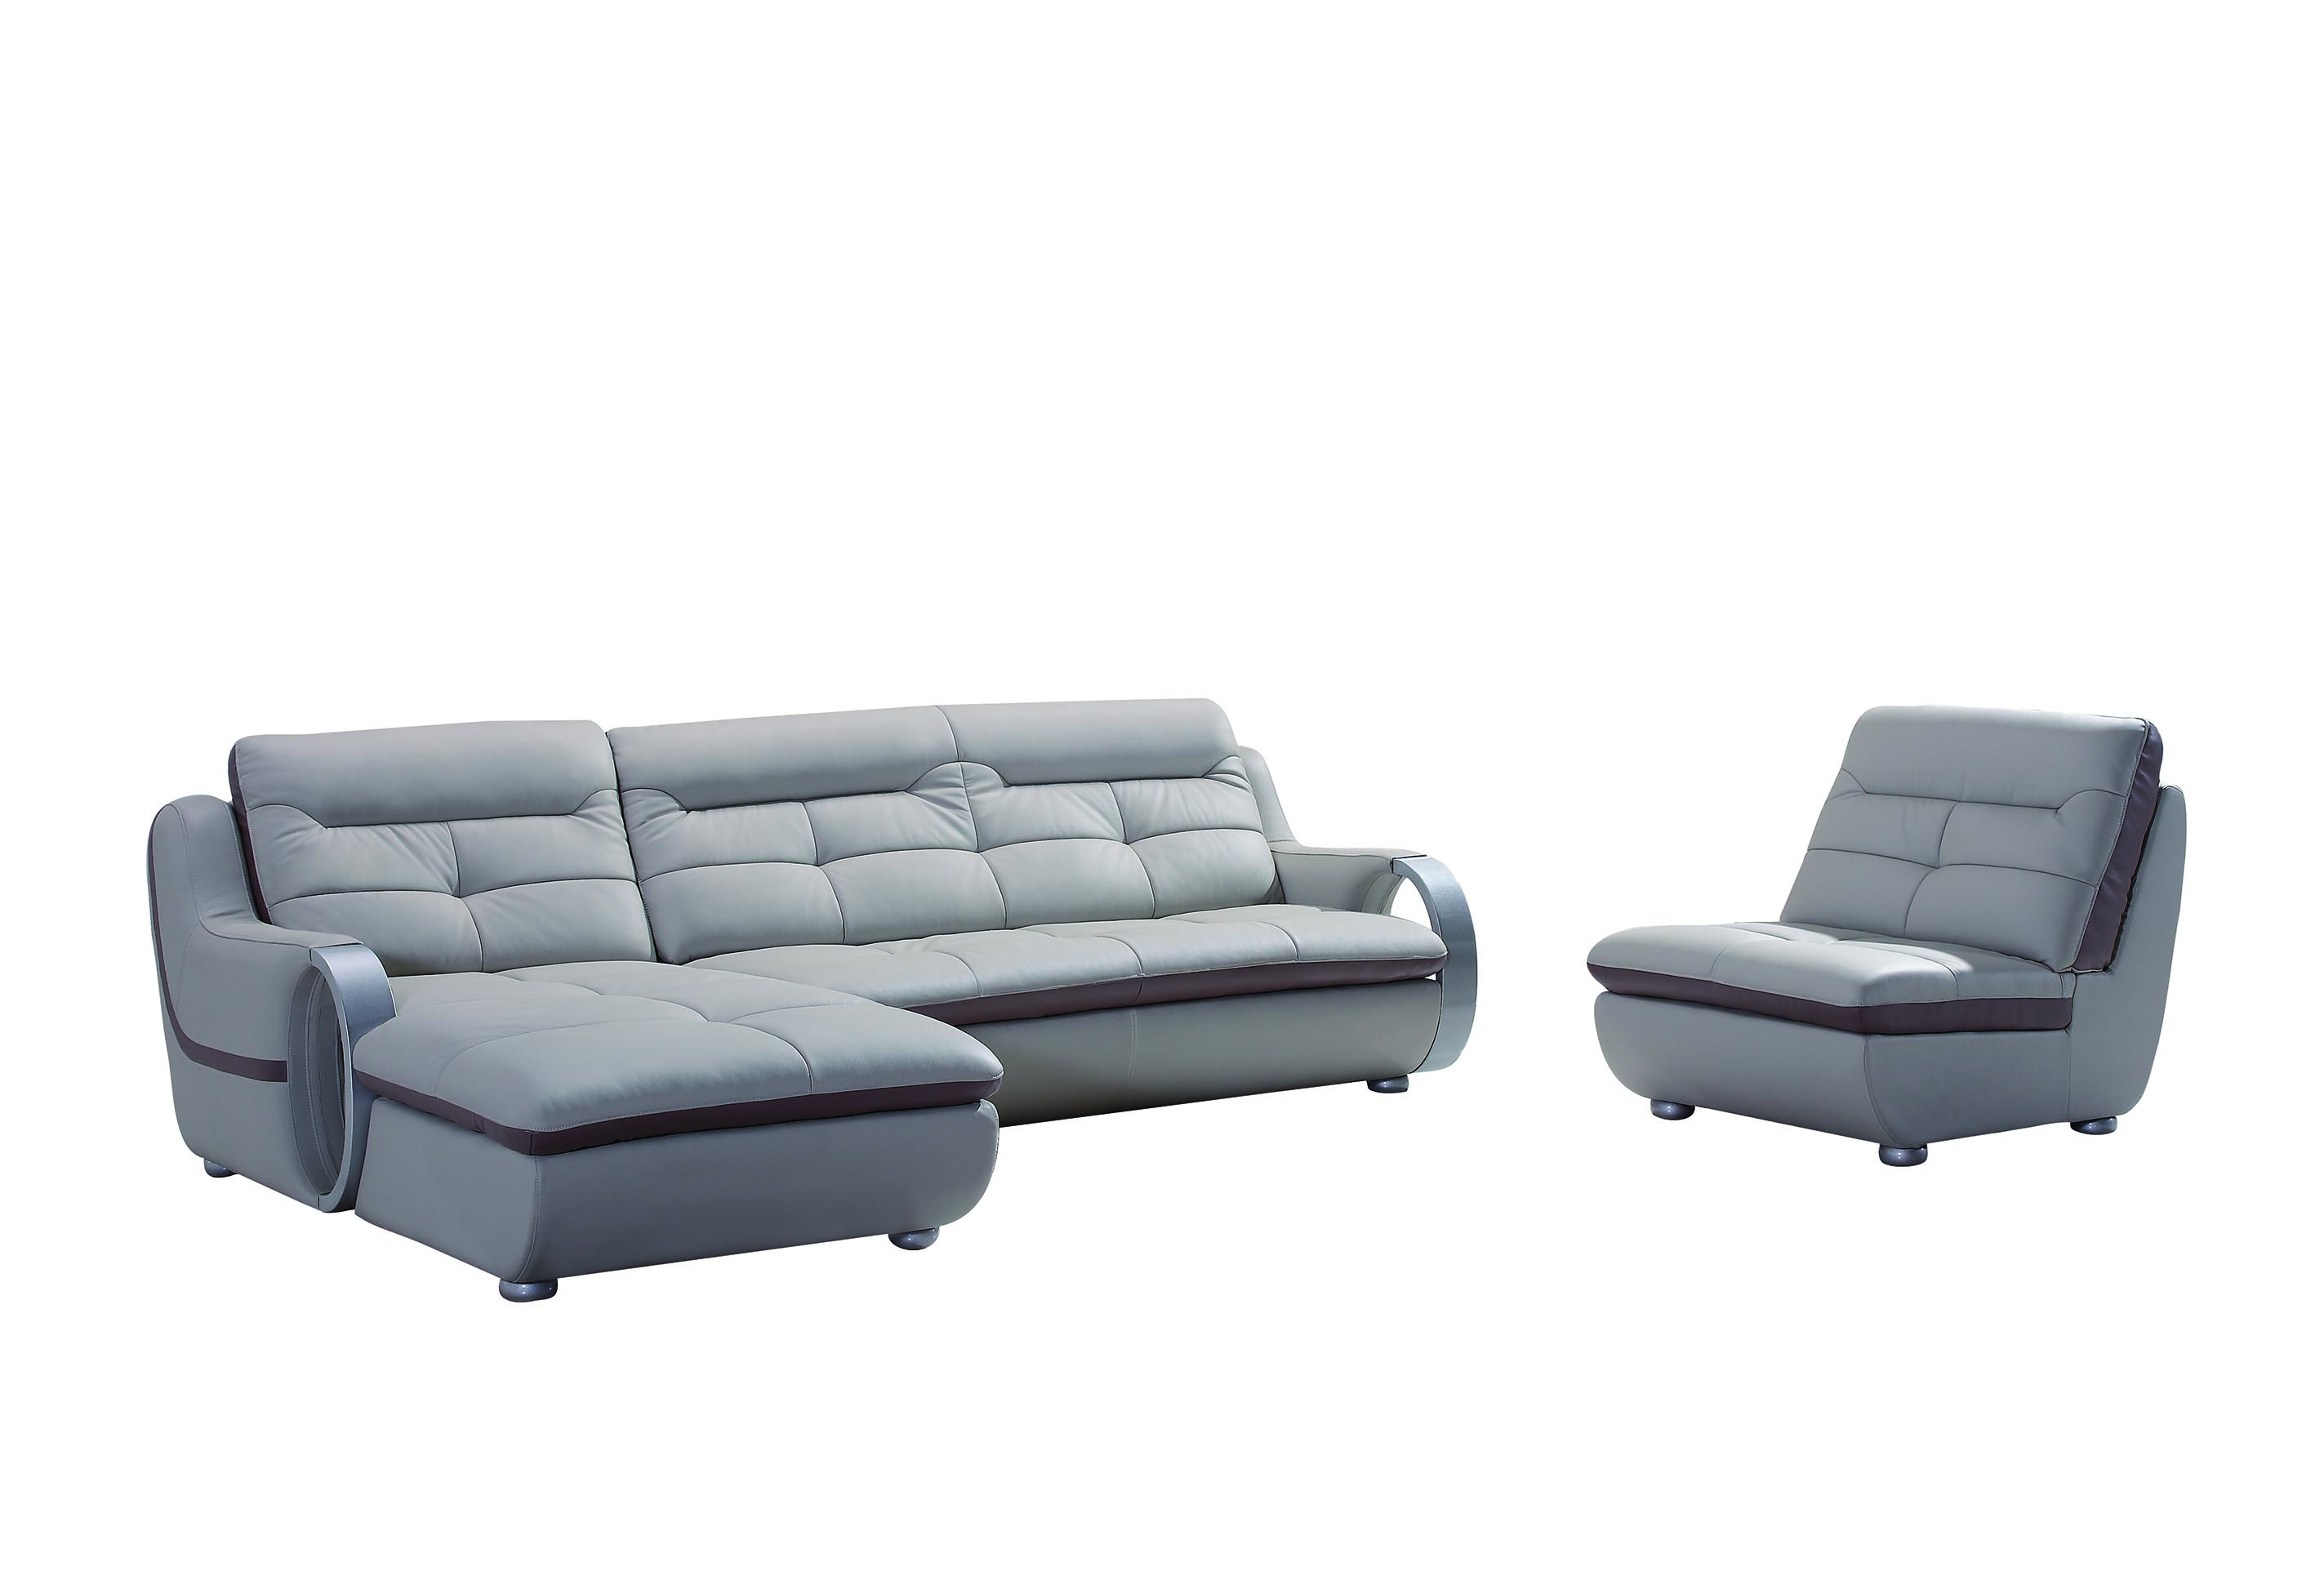 Living Room Furniture High Quality and Compact Sofa Set